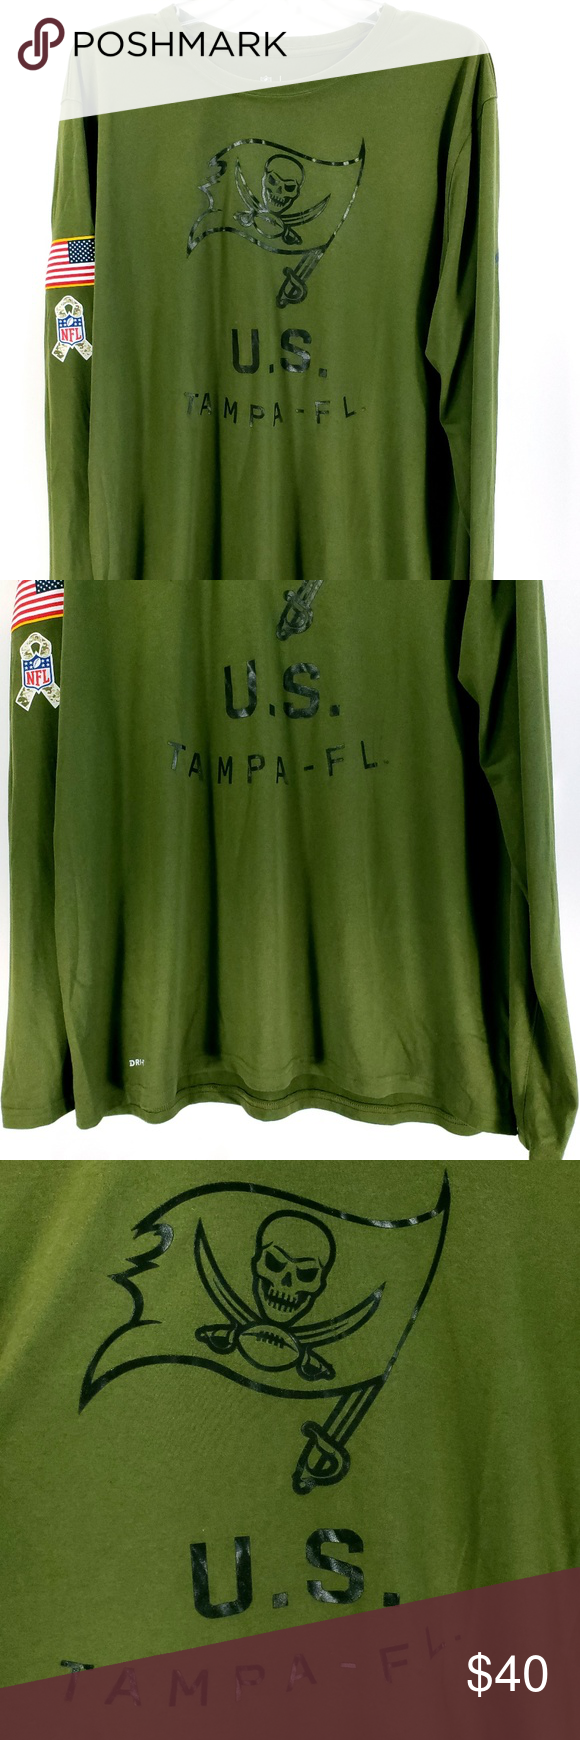 Tampa Bay Buccaneers NFL Salute to Service Tee New with tags men's Nike NFL Tampa Bay Salute to Service The Nike Tee  - Size XL on tag - Olive drab would be my best guess on the color - Salute to Service edition - Dri-Fit - Long sleeve - 938507-395 - 100% polyester - Measures approximately when laid flat:  22 1/ across front chest, 27 from back seam of collar to end of tee, & 31 from back side seam of collar to end of sleeve Nike Shirts Tees - Long Sleeve #salutetoservice